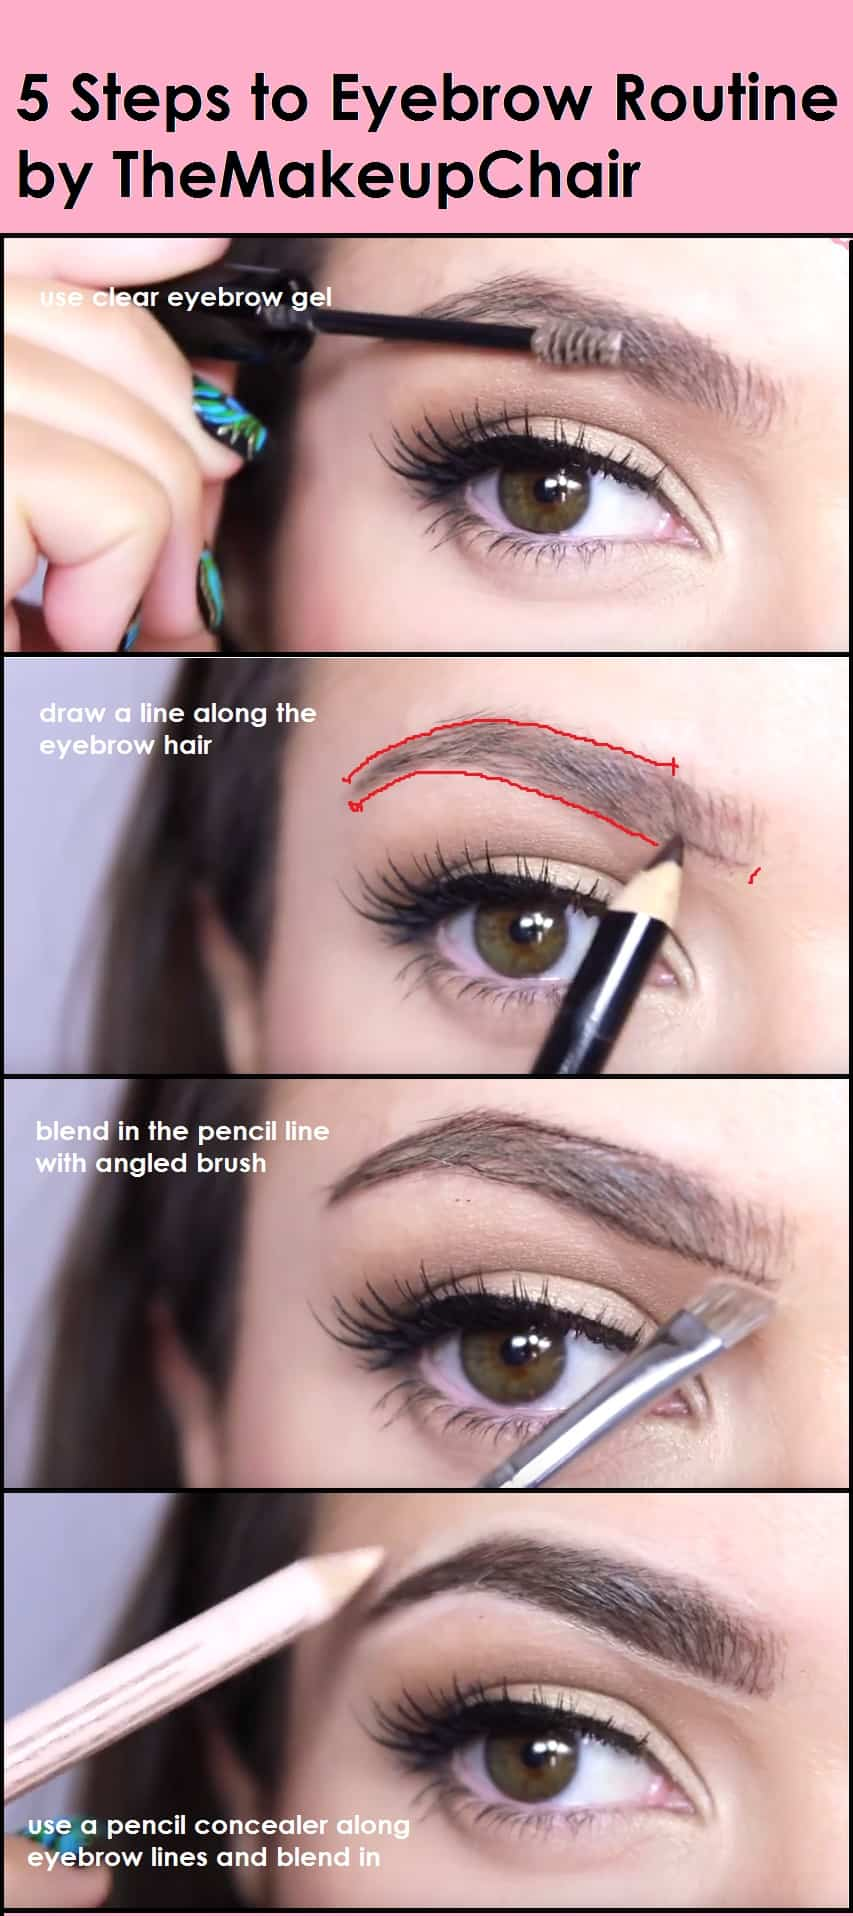 Follow these 5 steps to perfect eyebrow routine